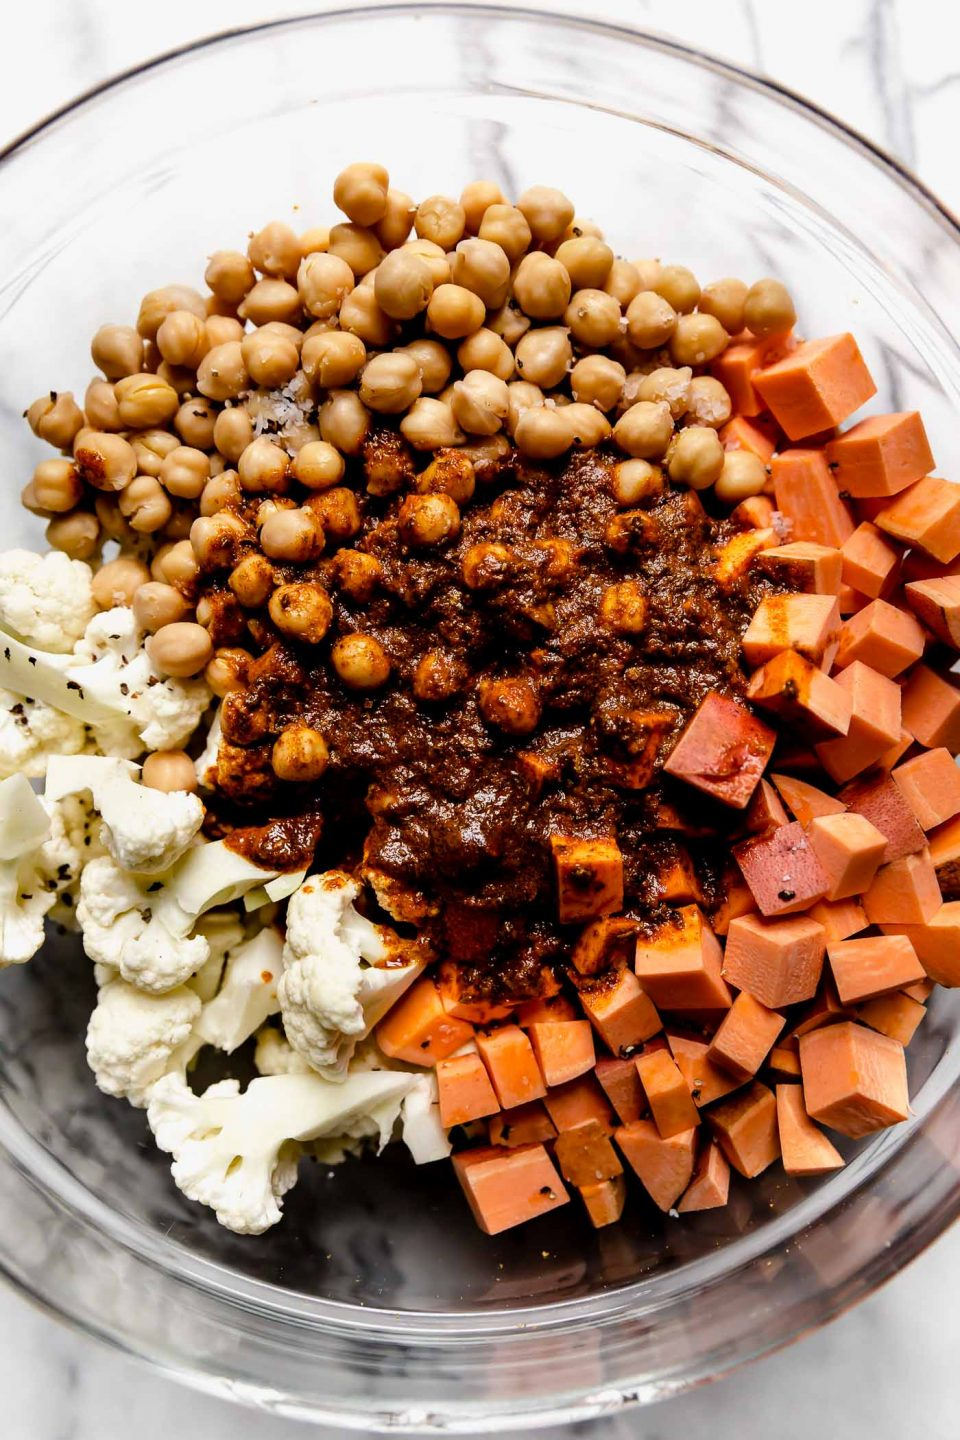 Cauliflower florets, diced sweet potatoes & chickpeas in a clear mixing bowl, topped with shawarma seasoning.